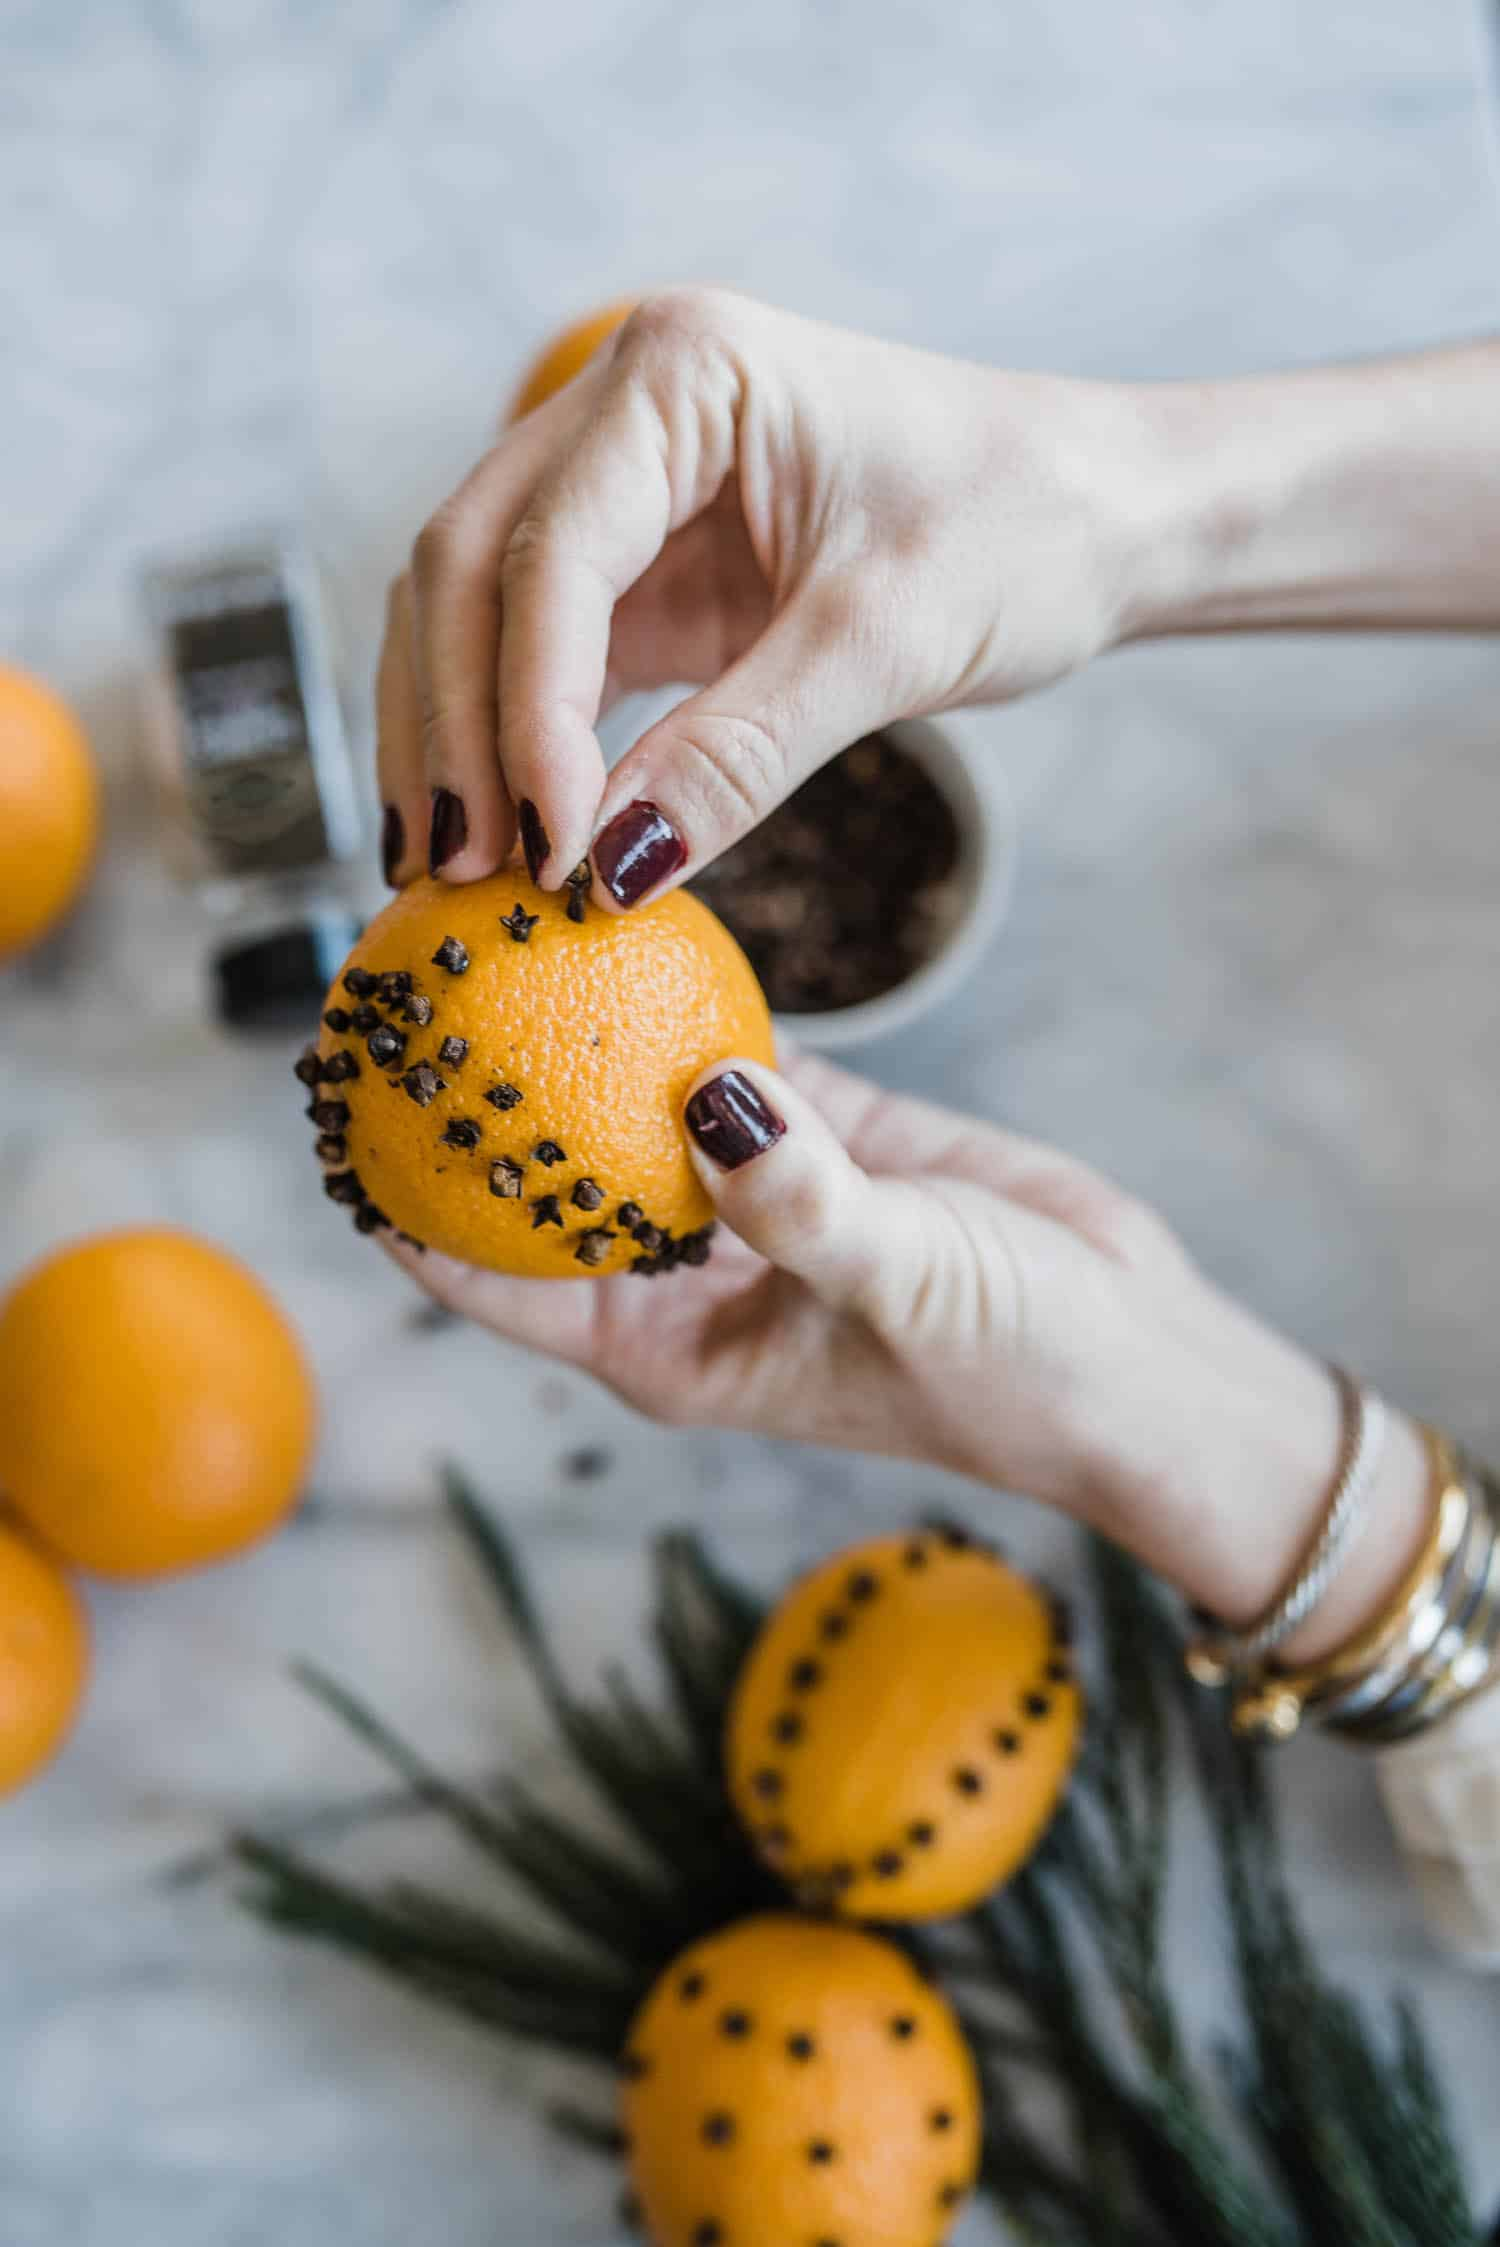 DIY Orange Pomander Balls - #holiday #holidaydiy spiced orange pomander balls @mystylevita